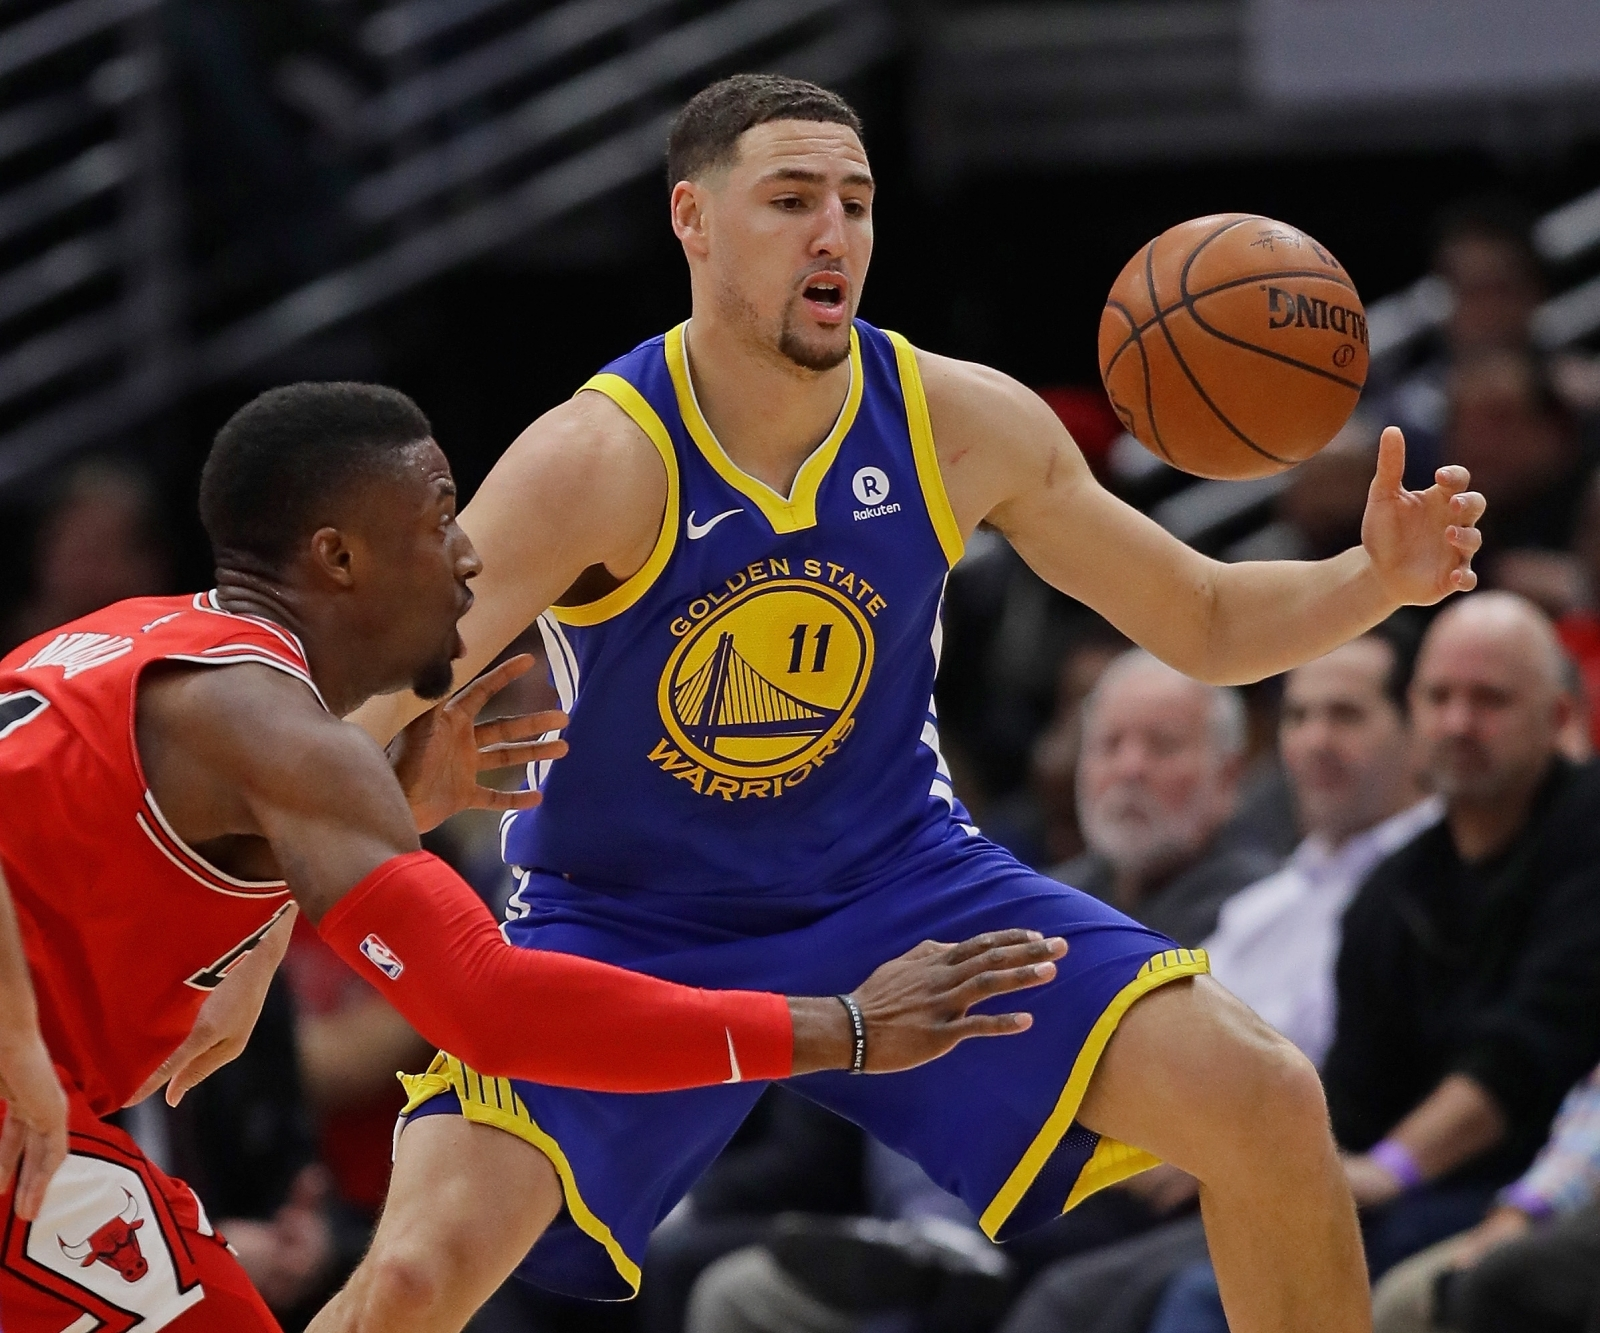 Golden State Warriors All-Star shooting guard Klay Thompson (in blue and yellow strip) revealed that the National Basketball Association champions plan to tour an African-American museum instead of making the traditional visit to the White House